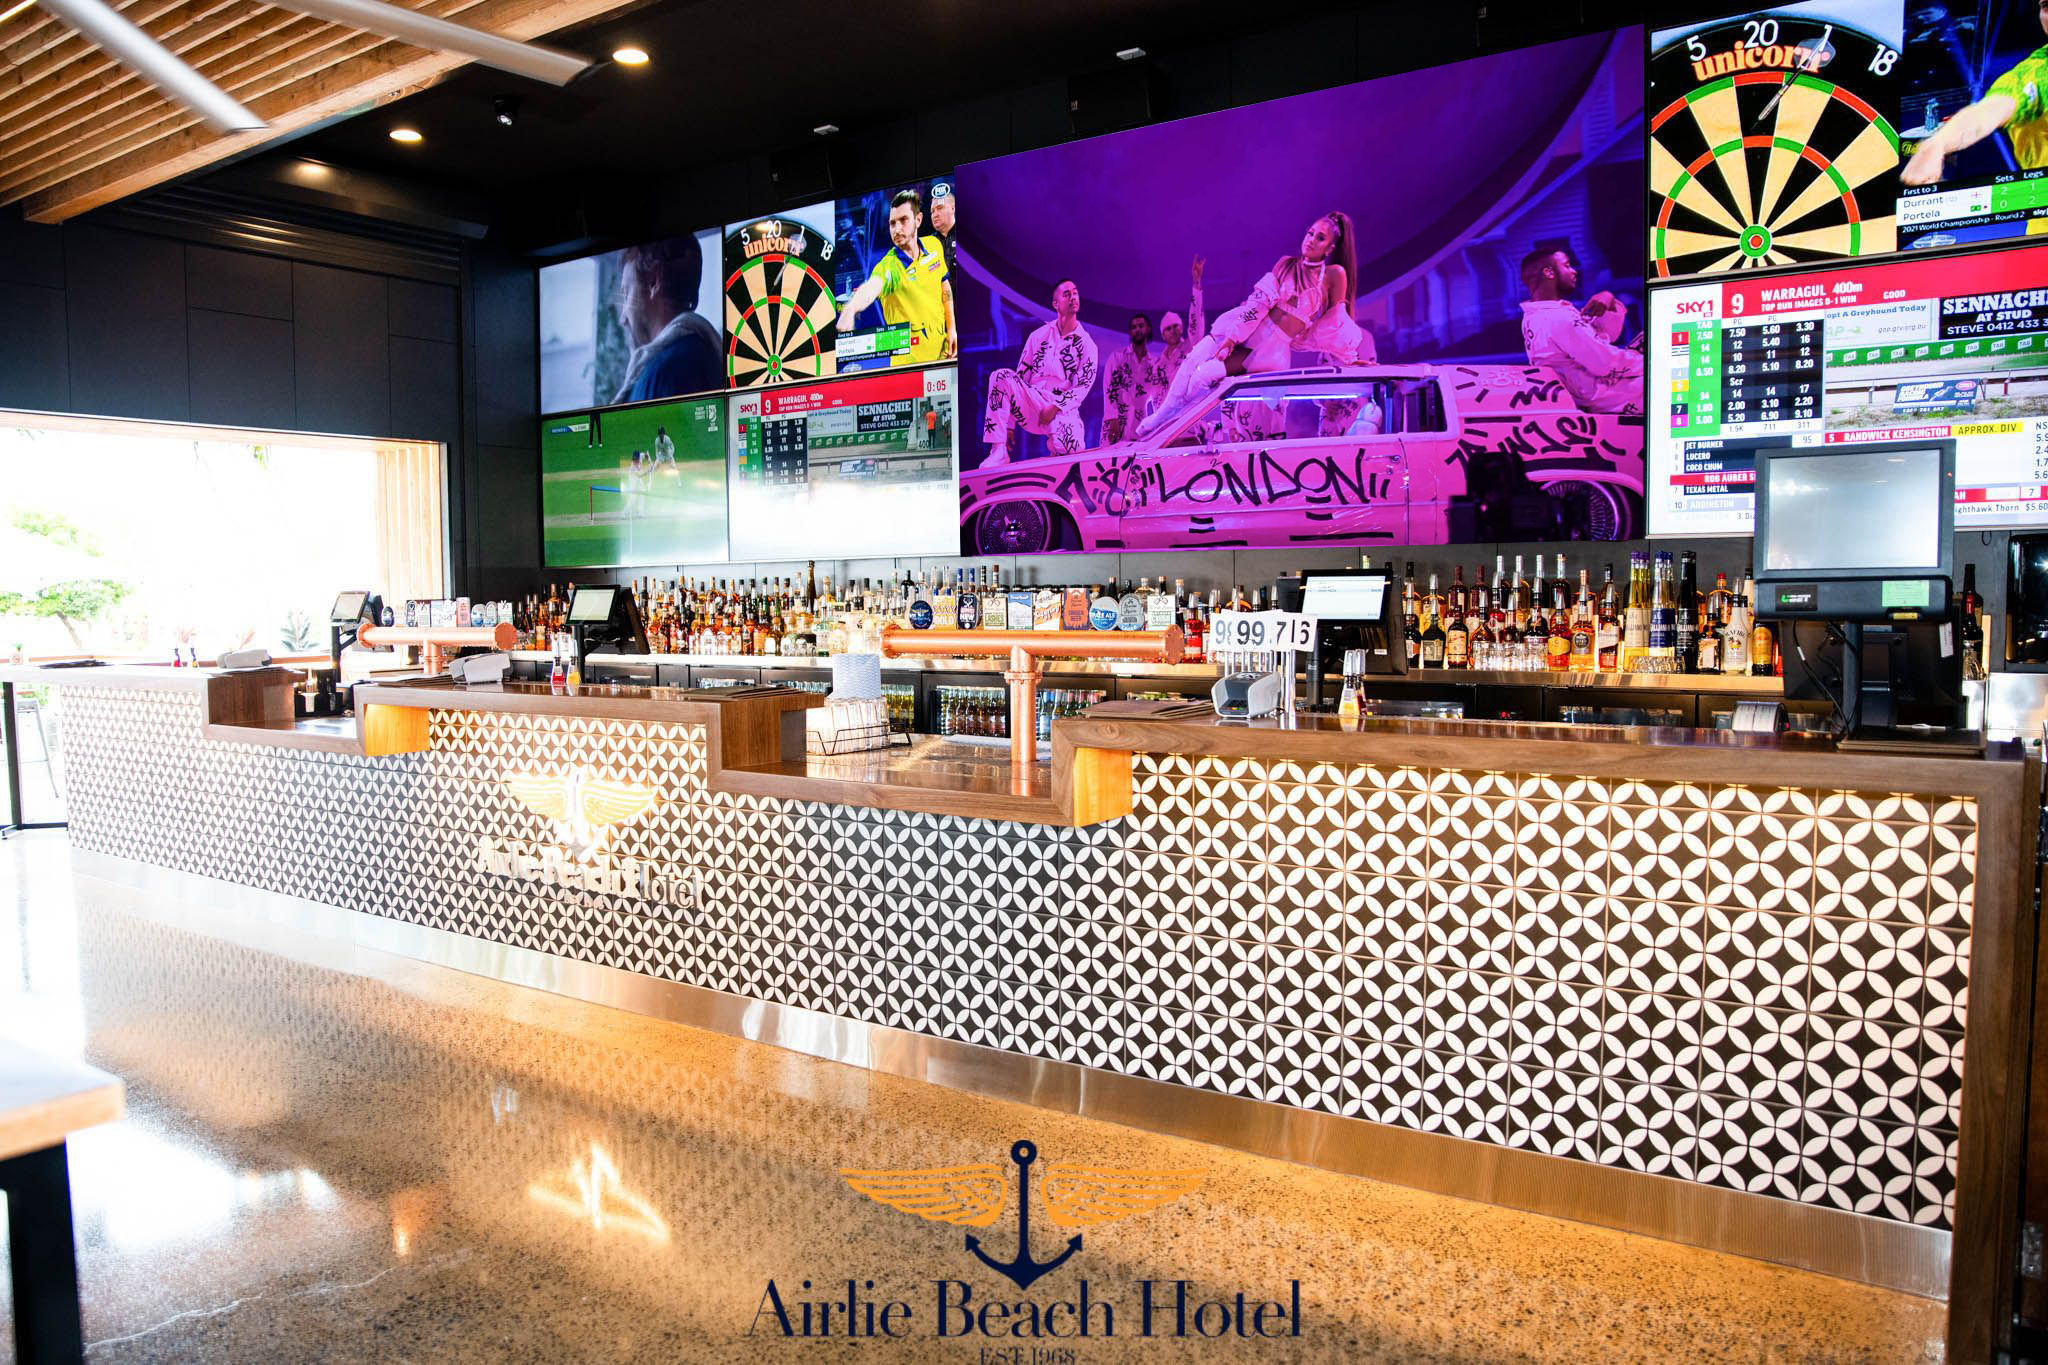 Voxson Indoor LED Signs - Airlie Beach Hotel